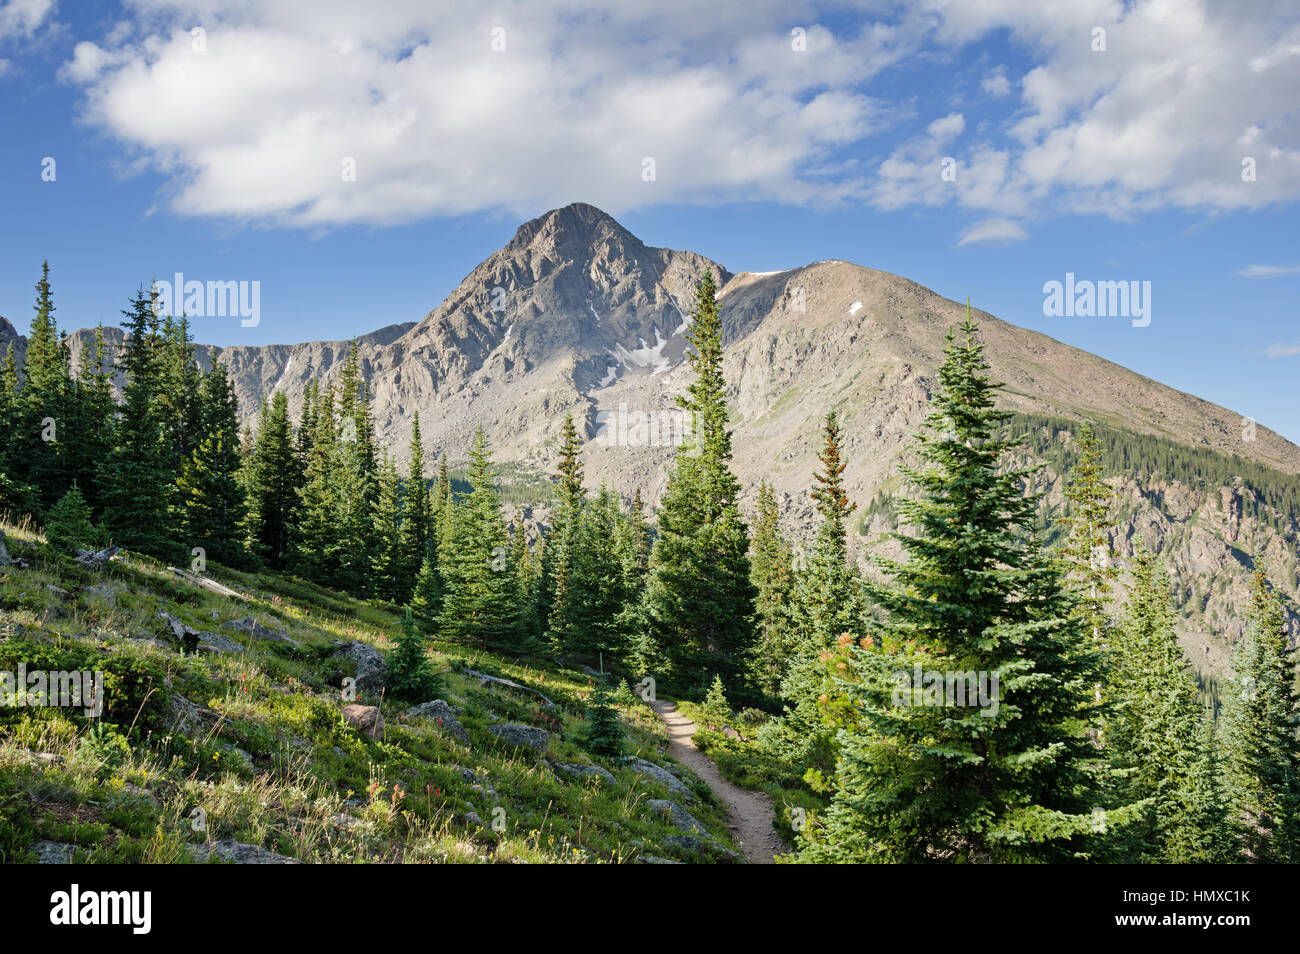 Mount of the Holy Cross from near Half Moon Pass - Stock Image